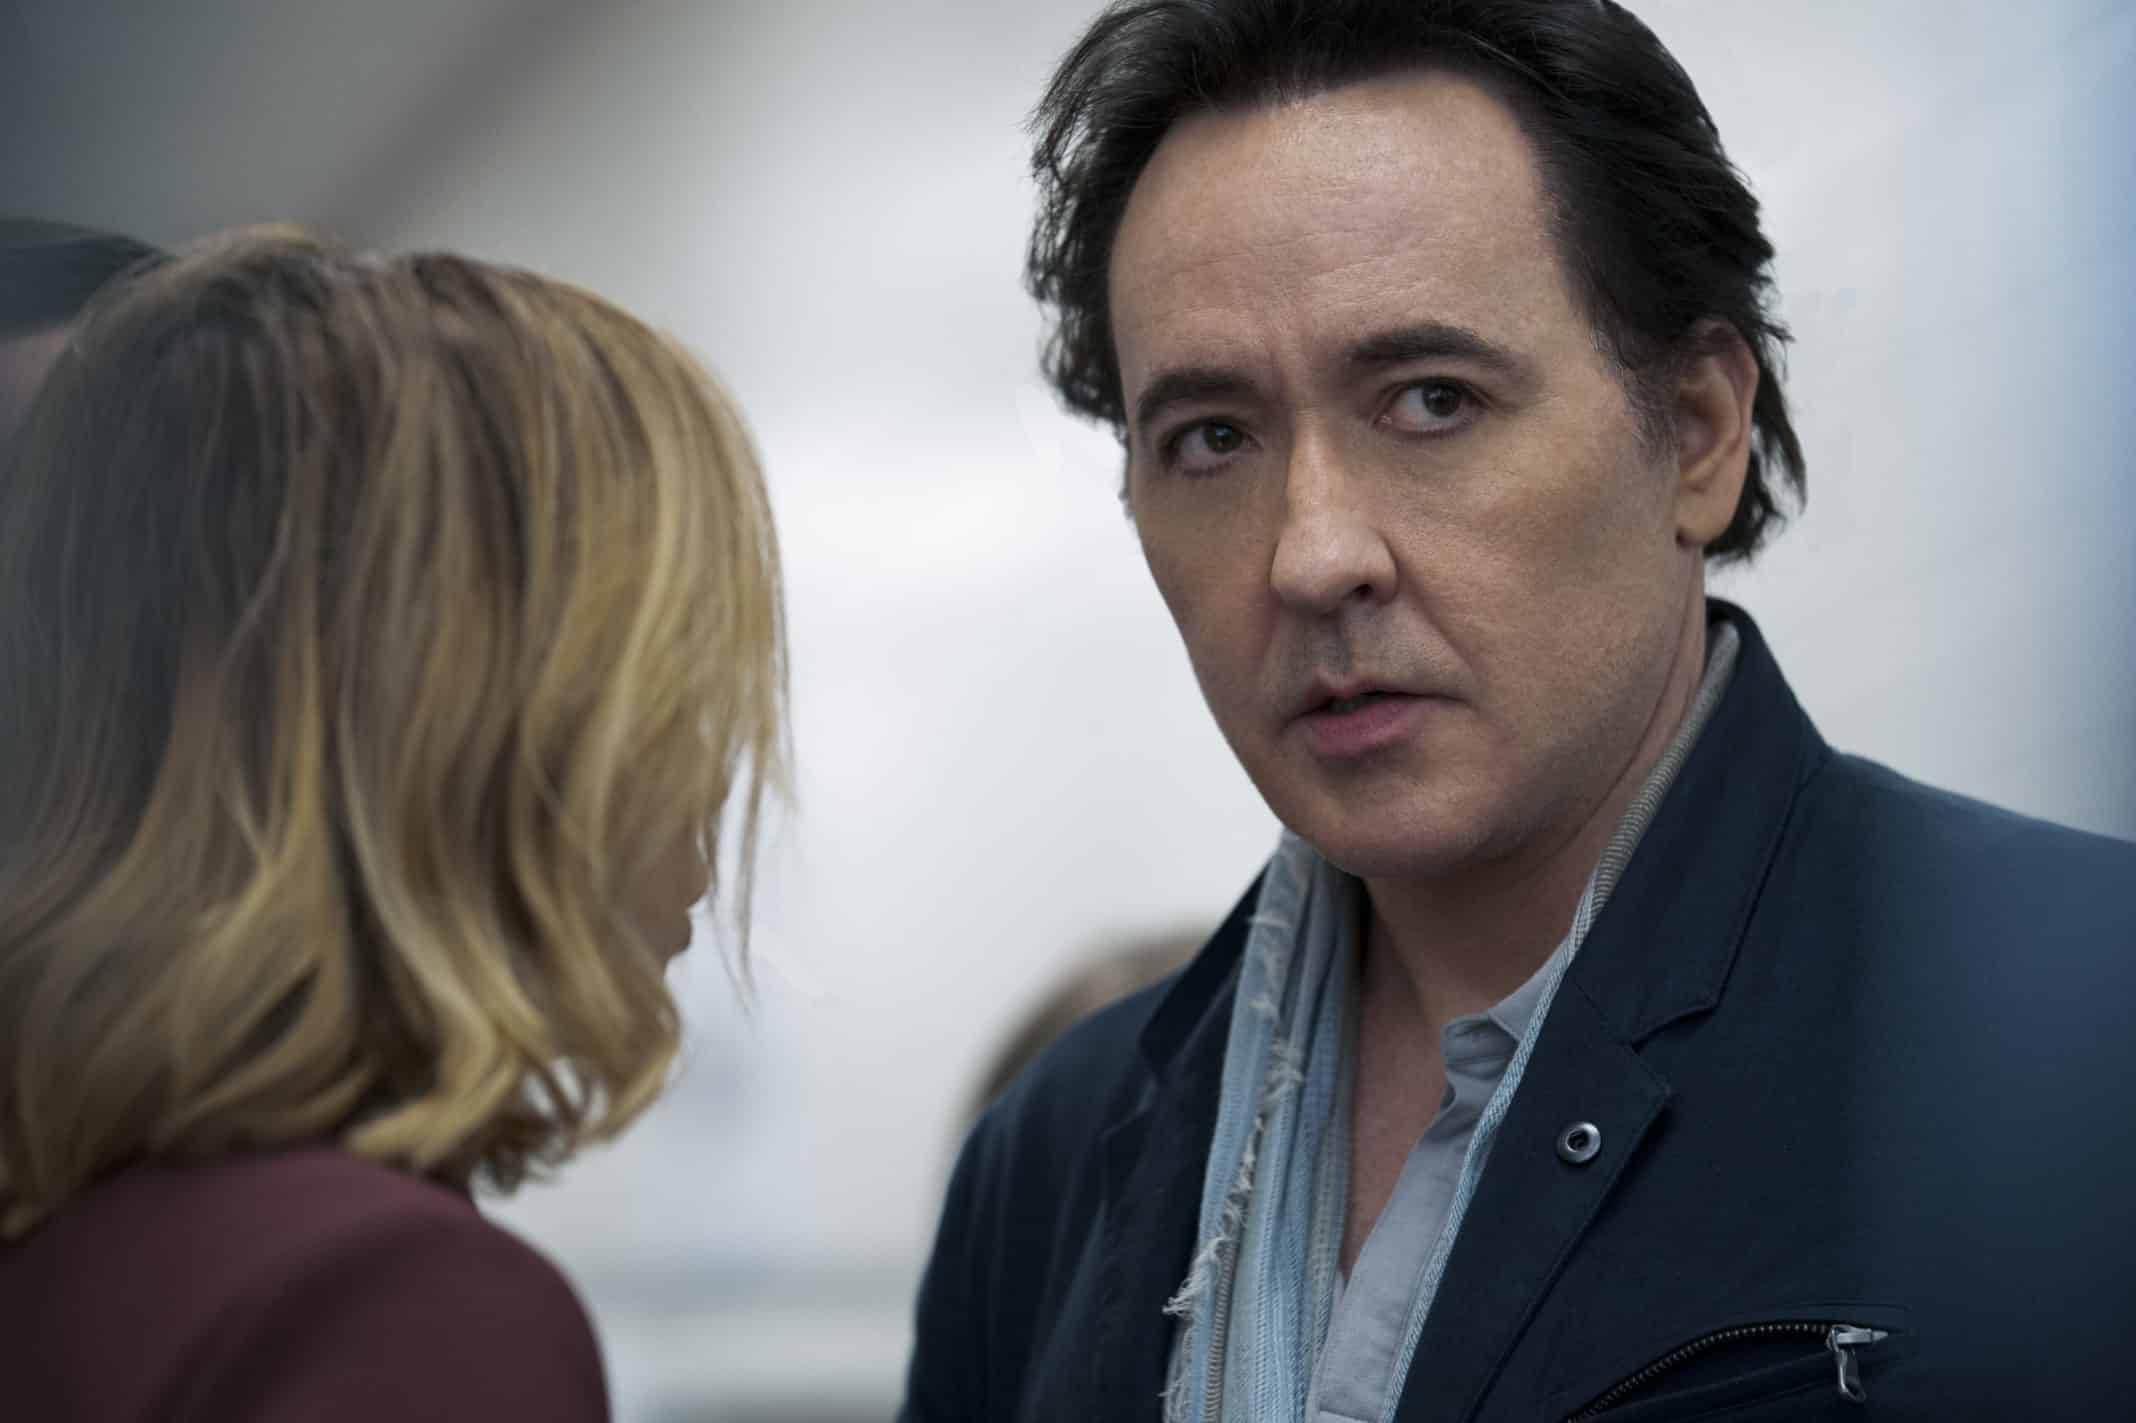 Dr. Kevin Christie (John Cusack) talking to someone.